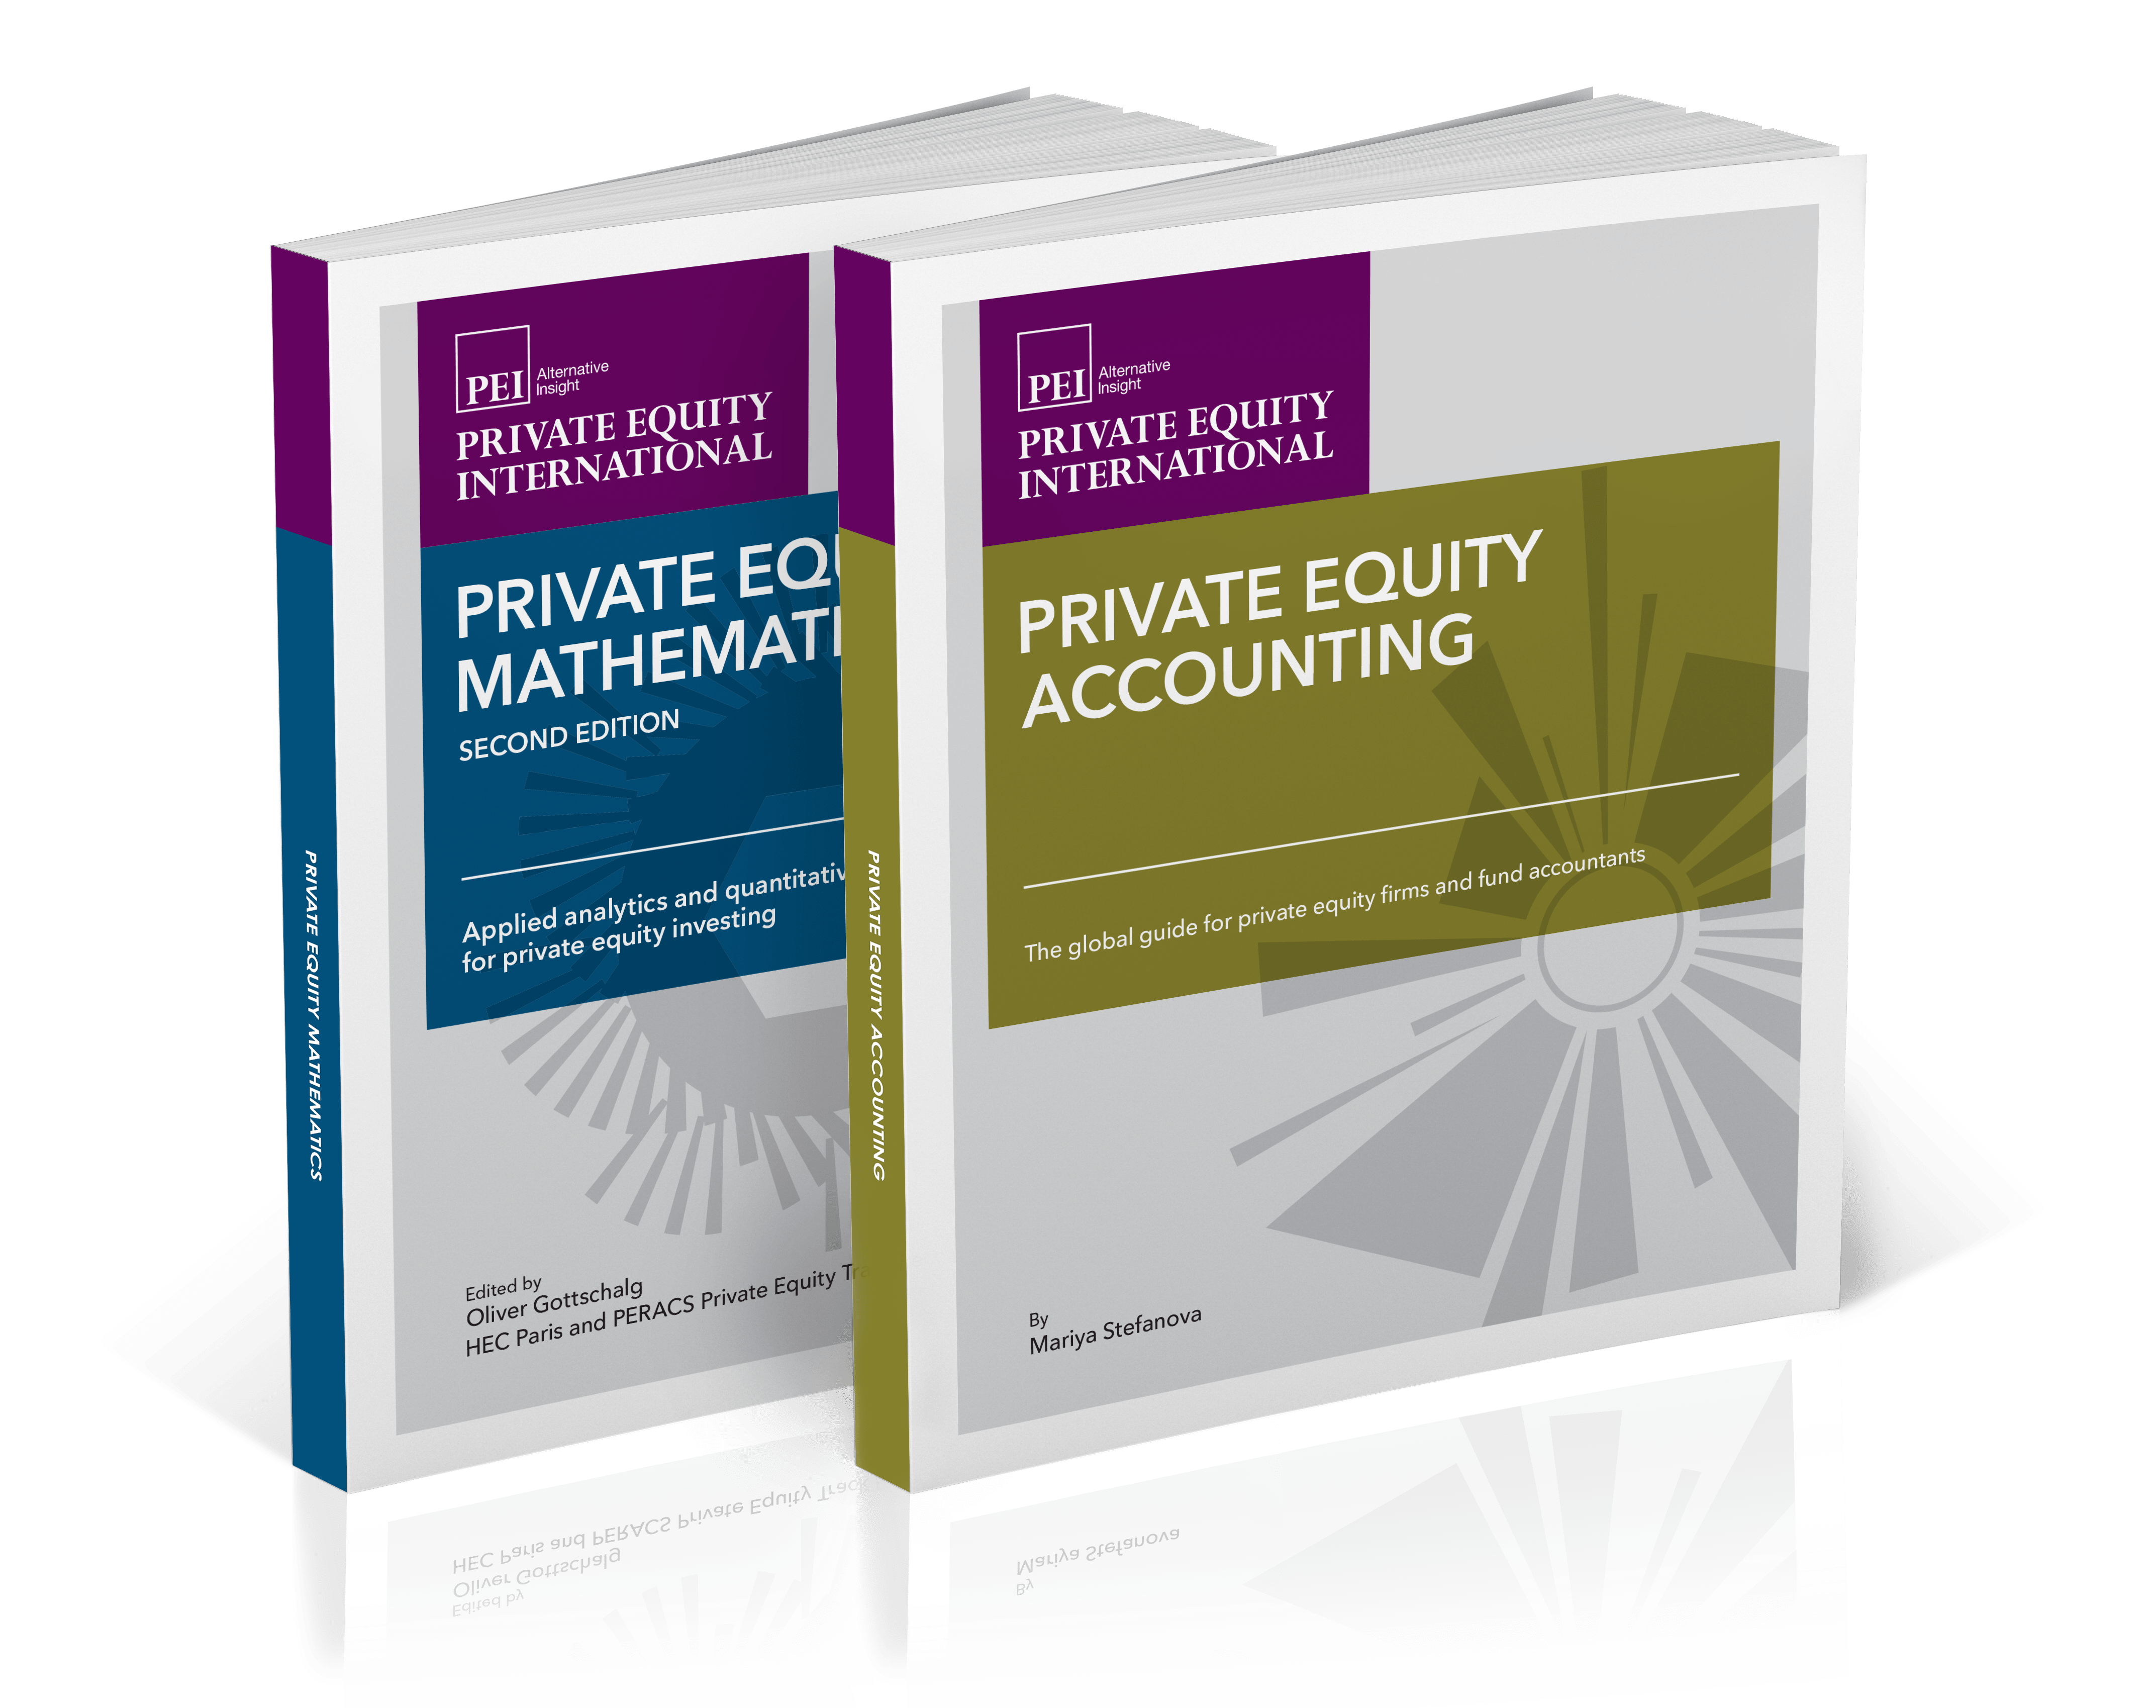 Private Equity Mathematics and Private Equity Accounting - Private Equity International